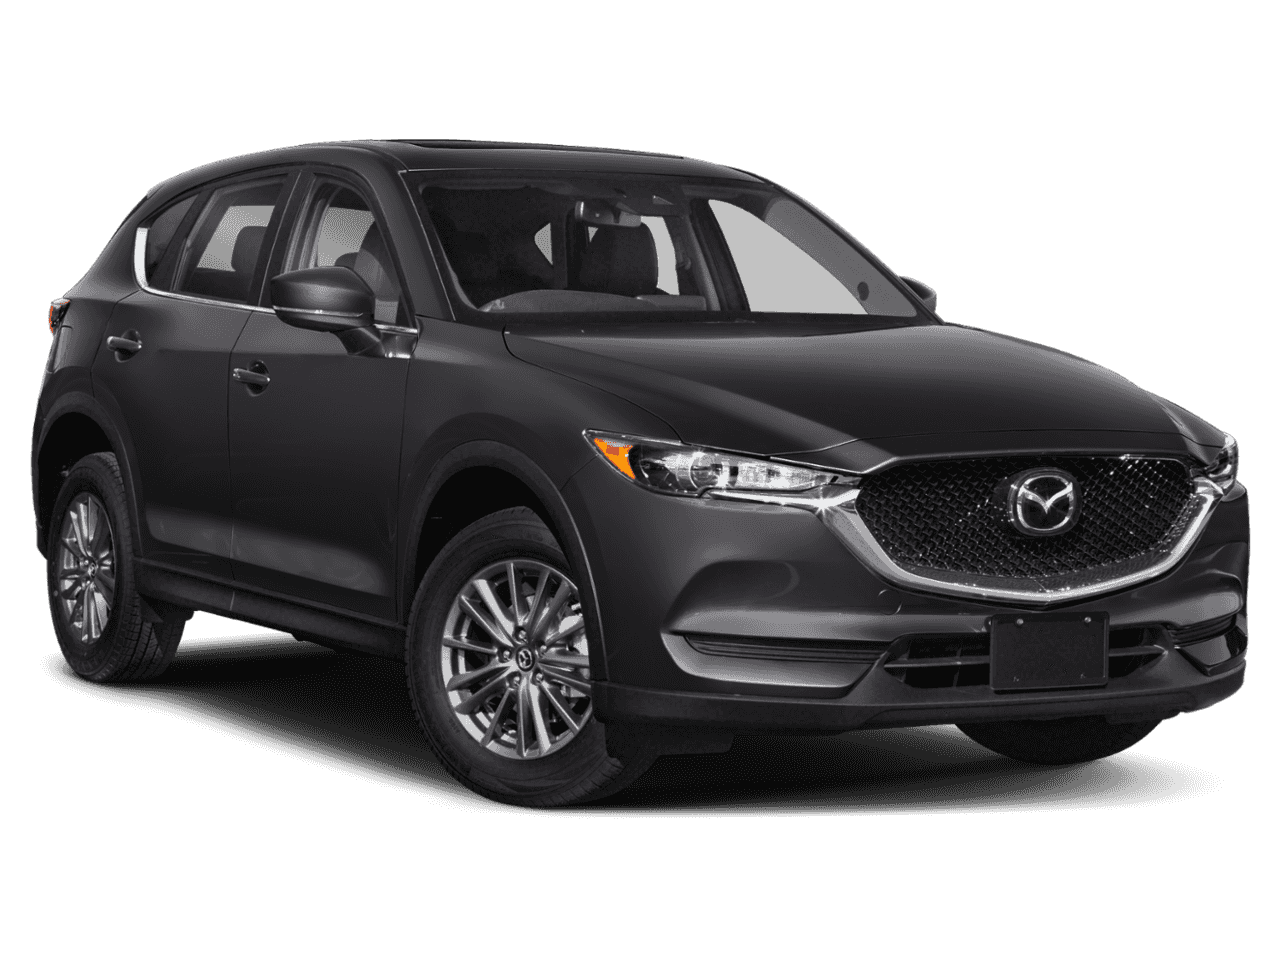 "2020 Mazda<br/><span class=""vdp-trim"">CX-5 Touring FWD Sport Utility</span>"